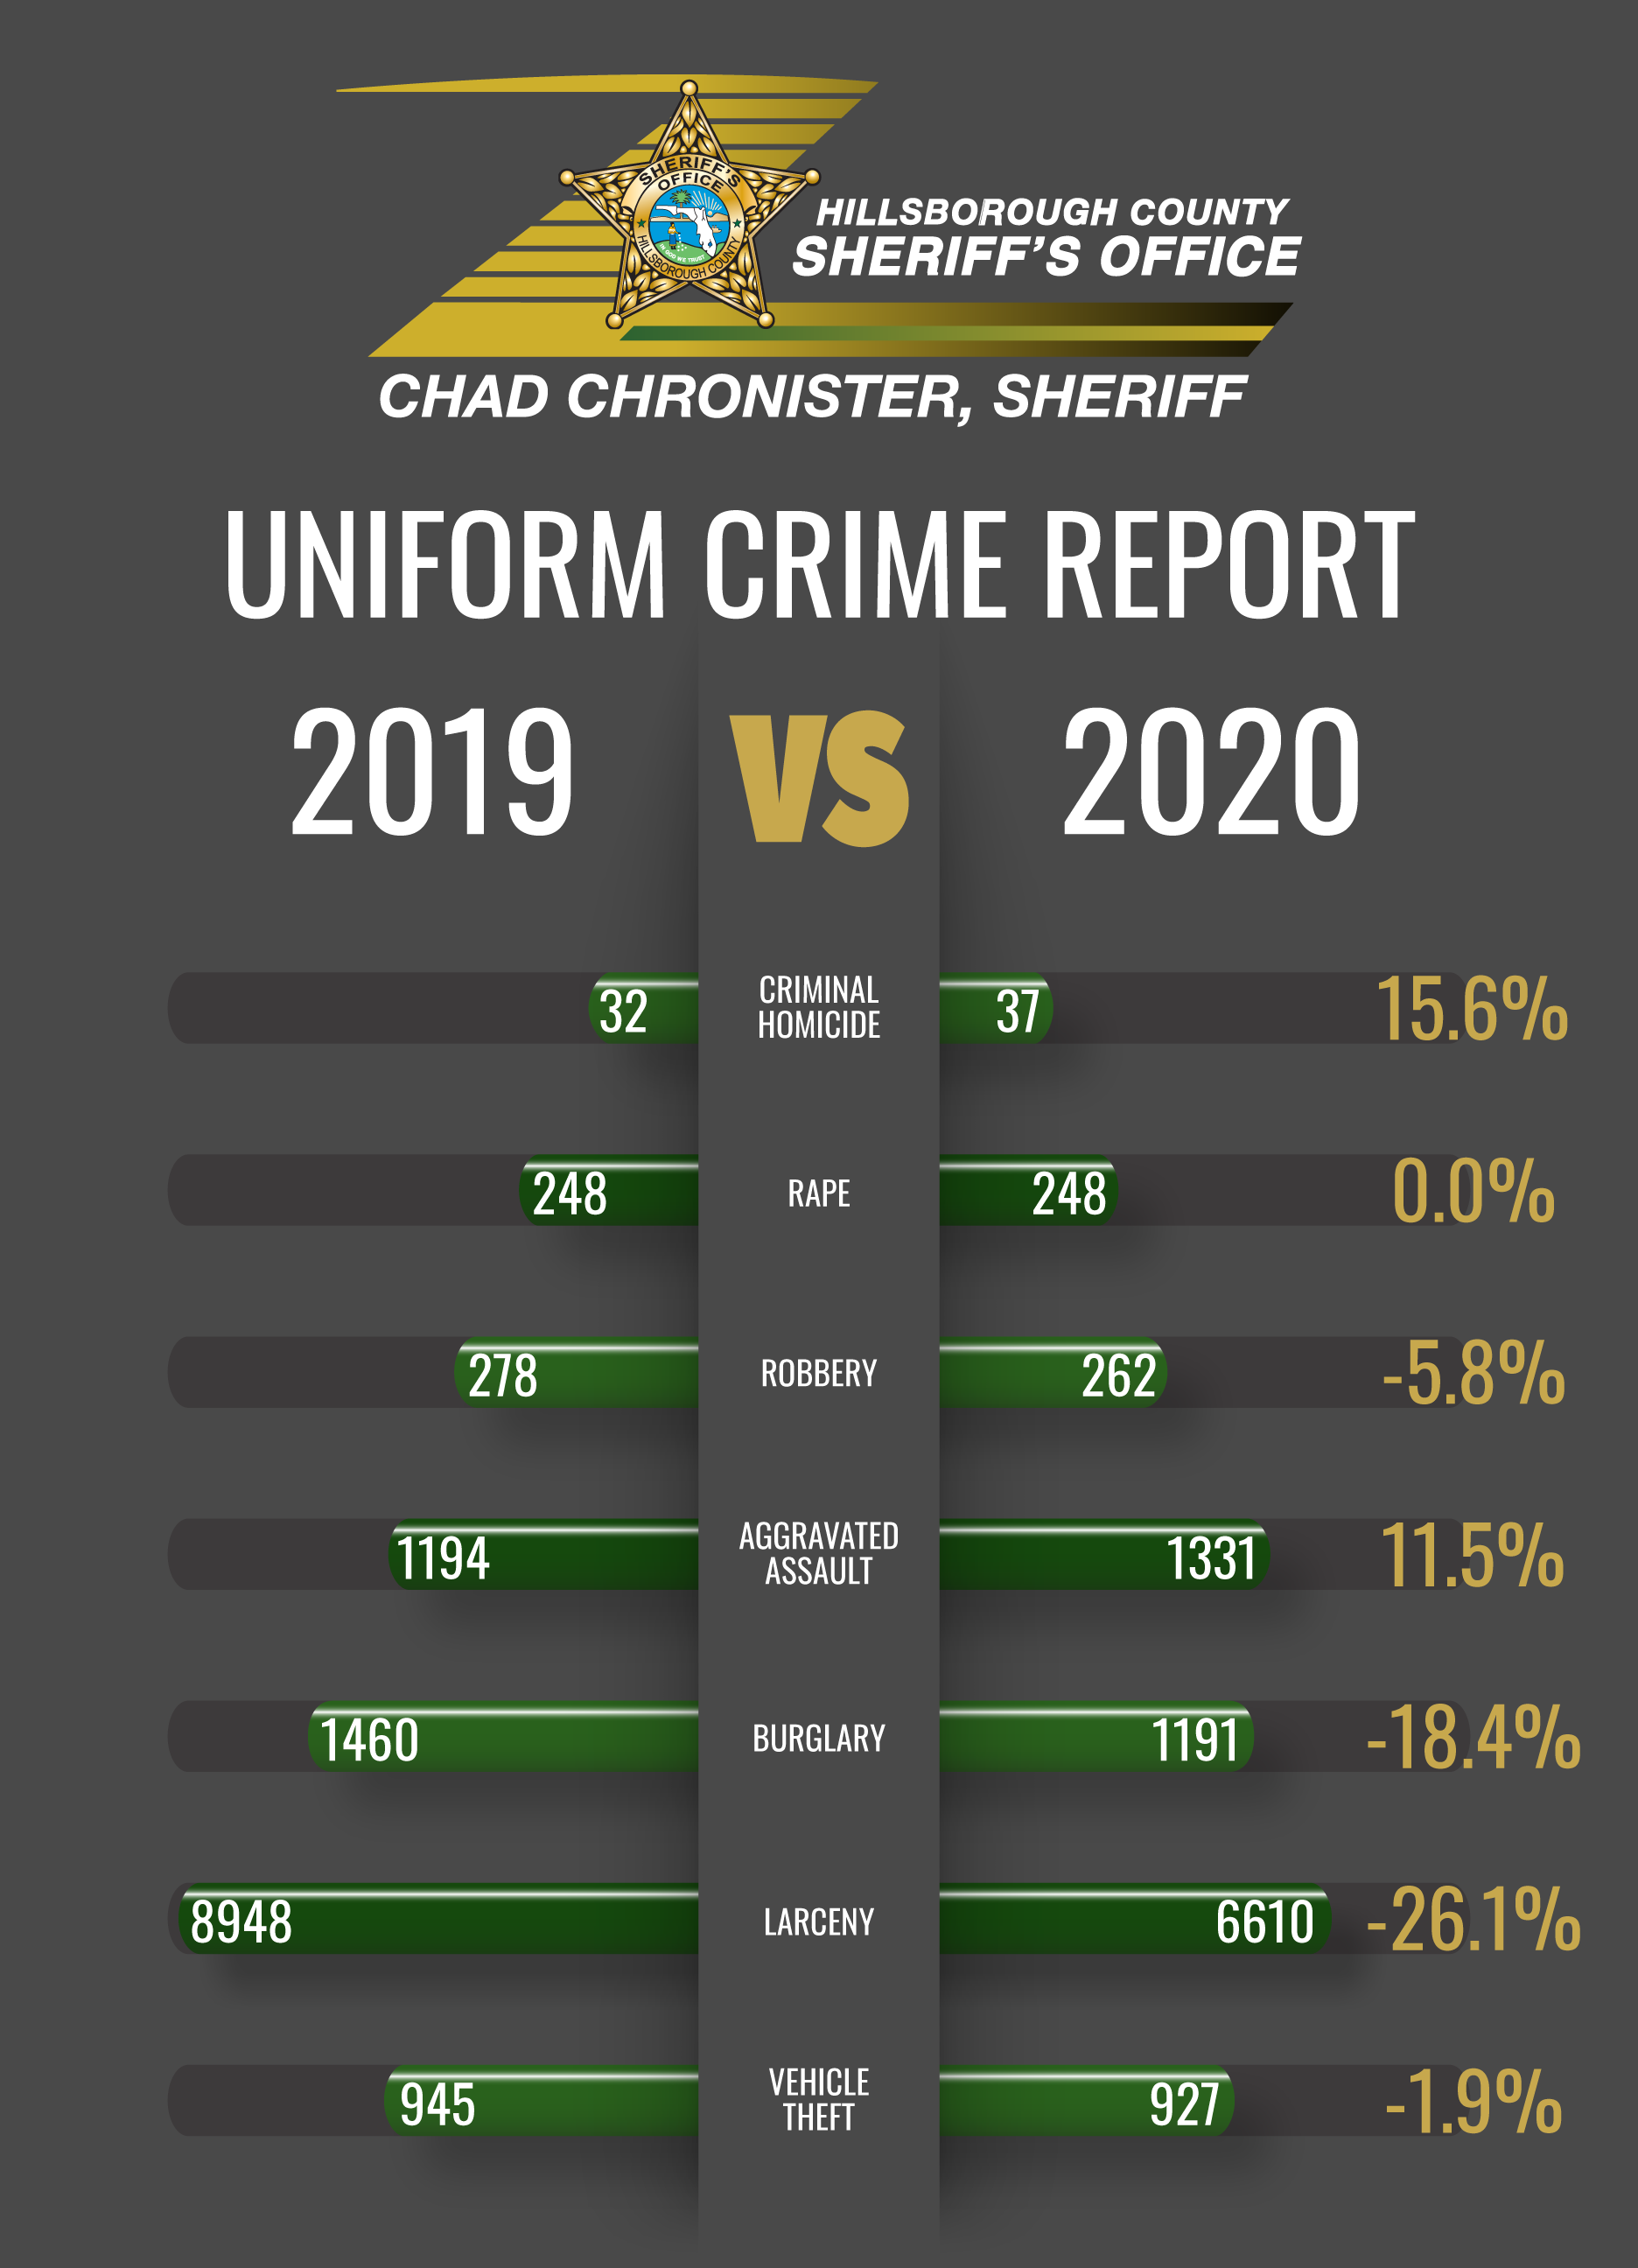 Crime down in Hillsborough County in 2020